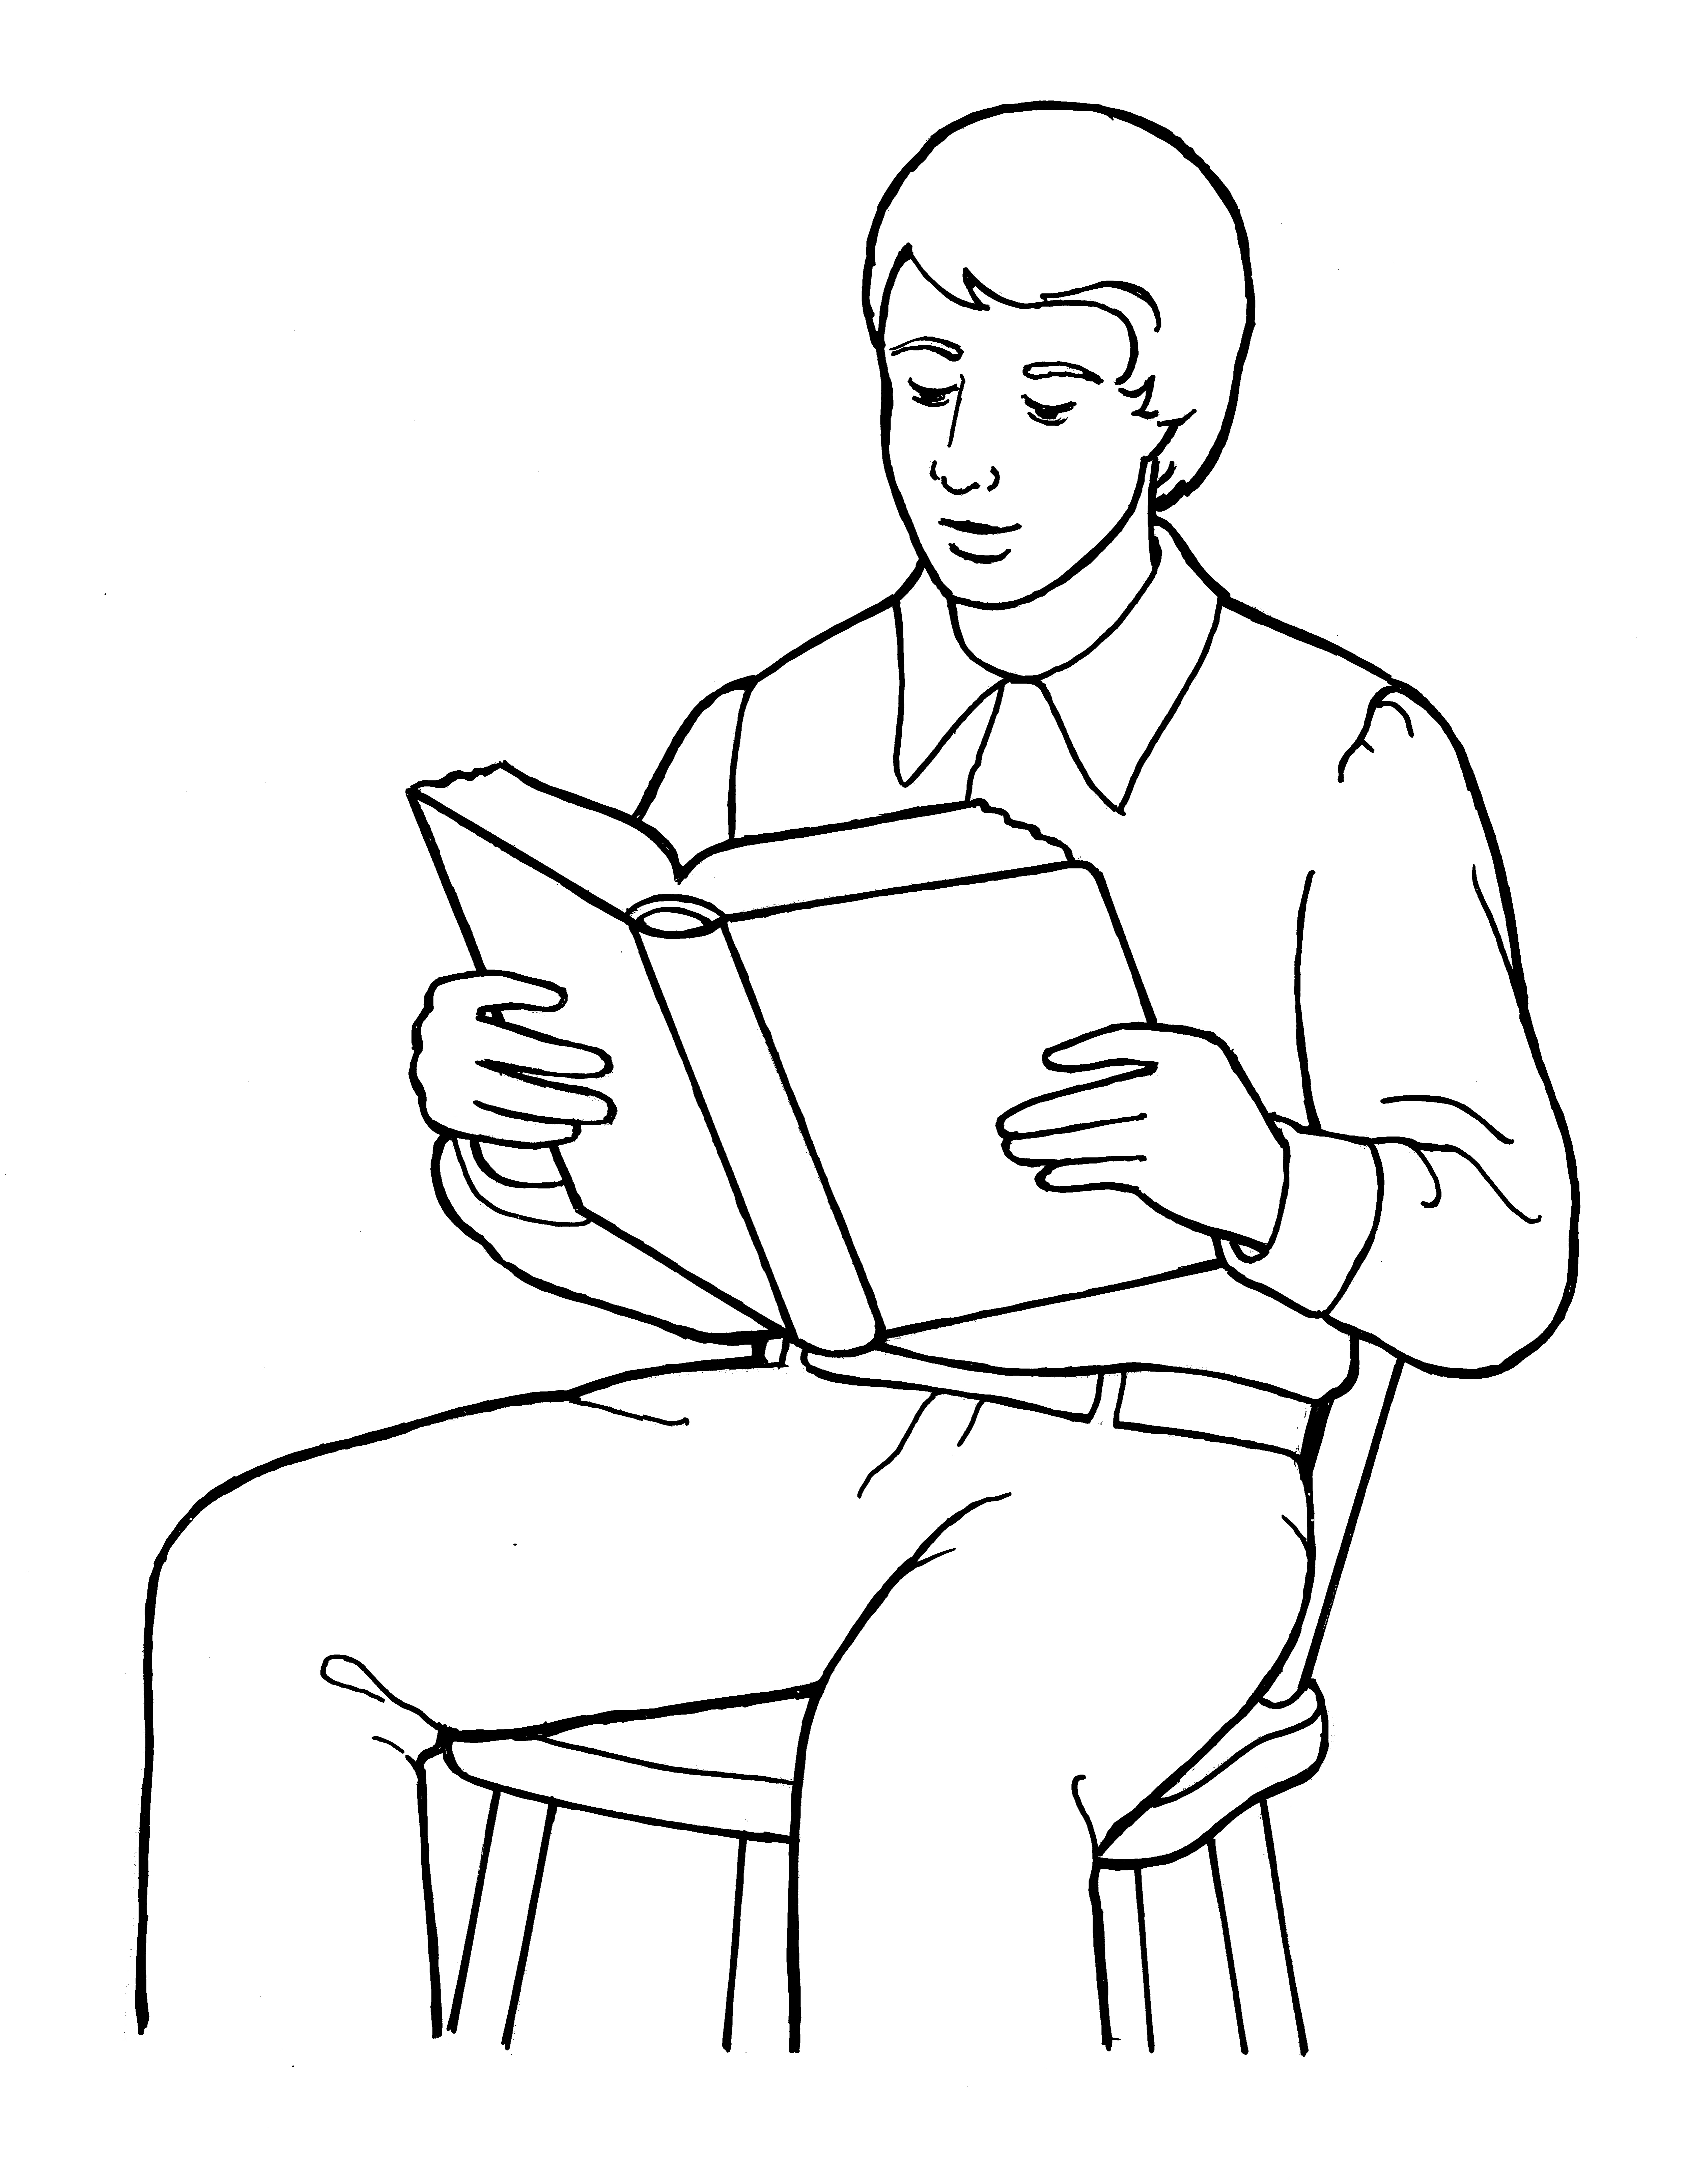 An illustration of a young Joseph Smith reading the scriptures, from the nursery manual Behold Your Little Ones (2008), page 103.